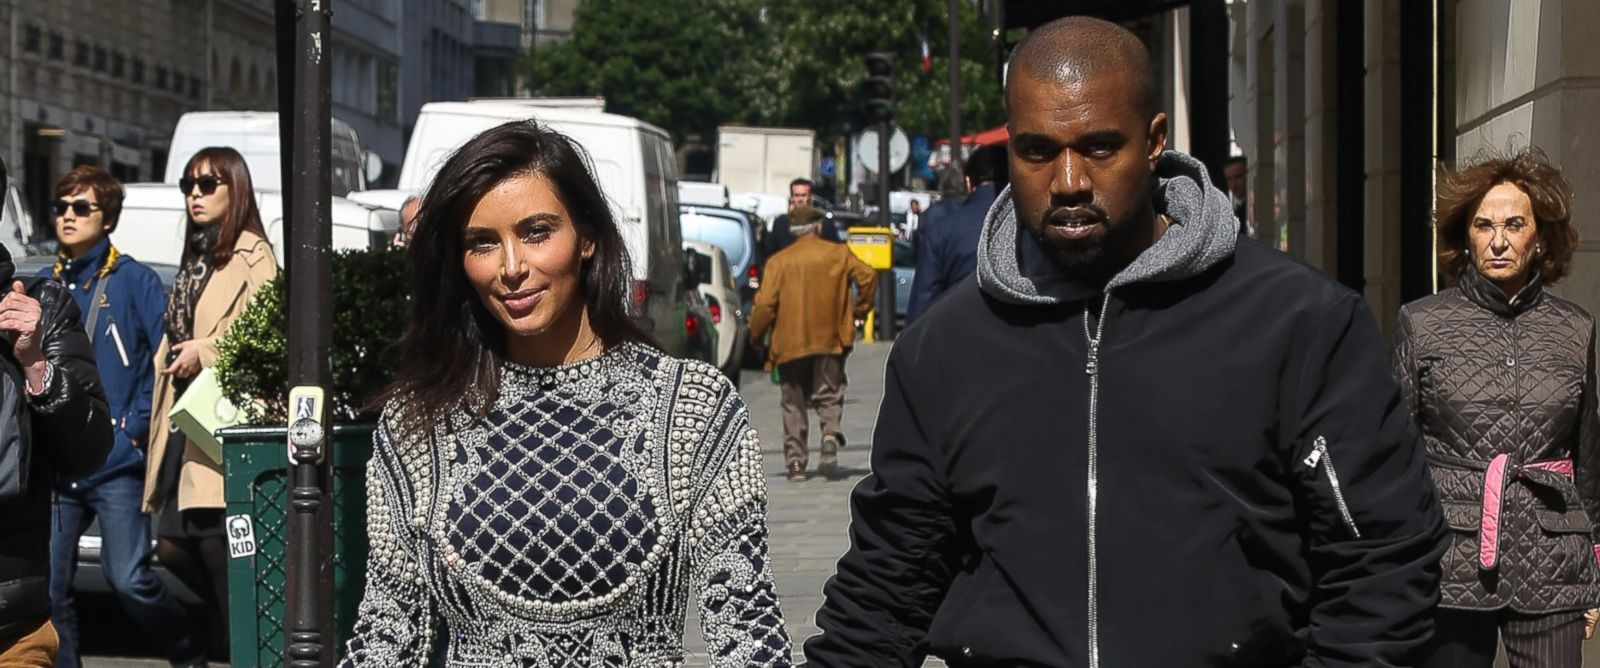 PHOTO: Kim Kardashian and Kanye West are seen strolling on rue Francois Premier on April 14, 2014 in Paris, France.